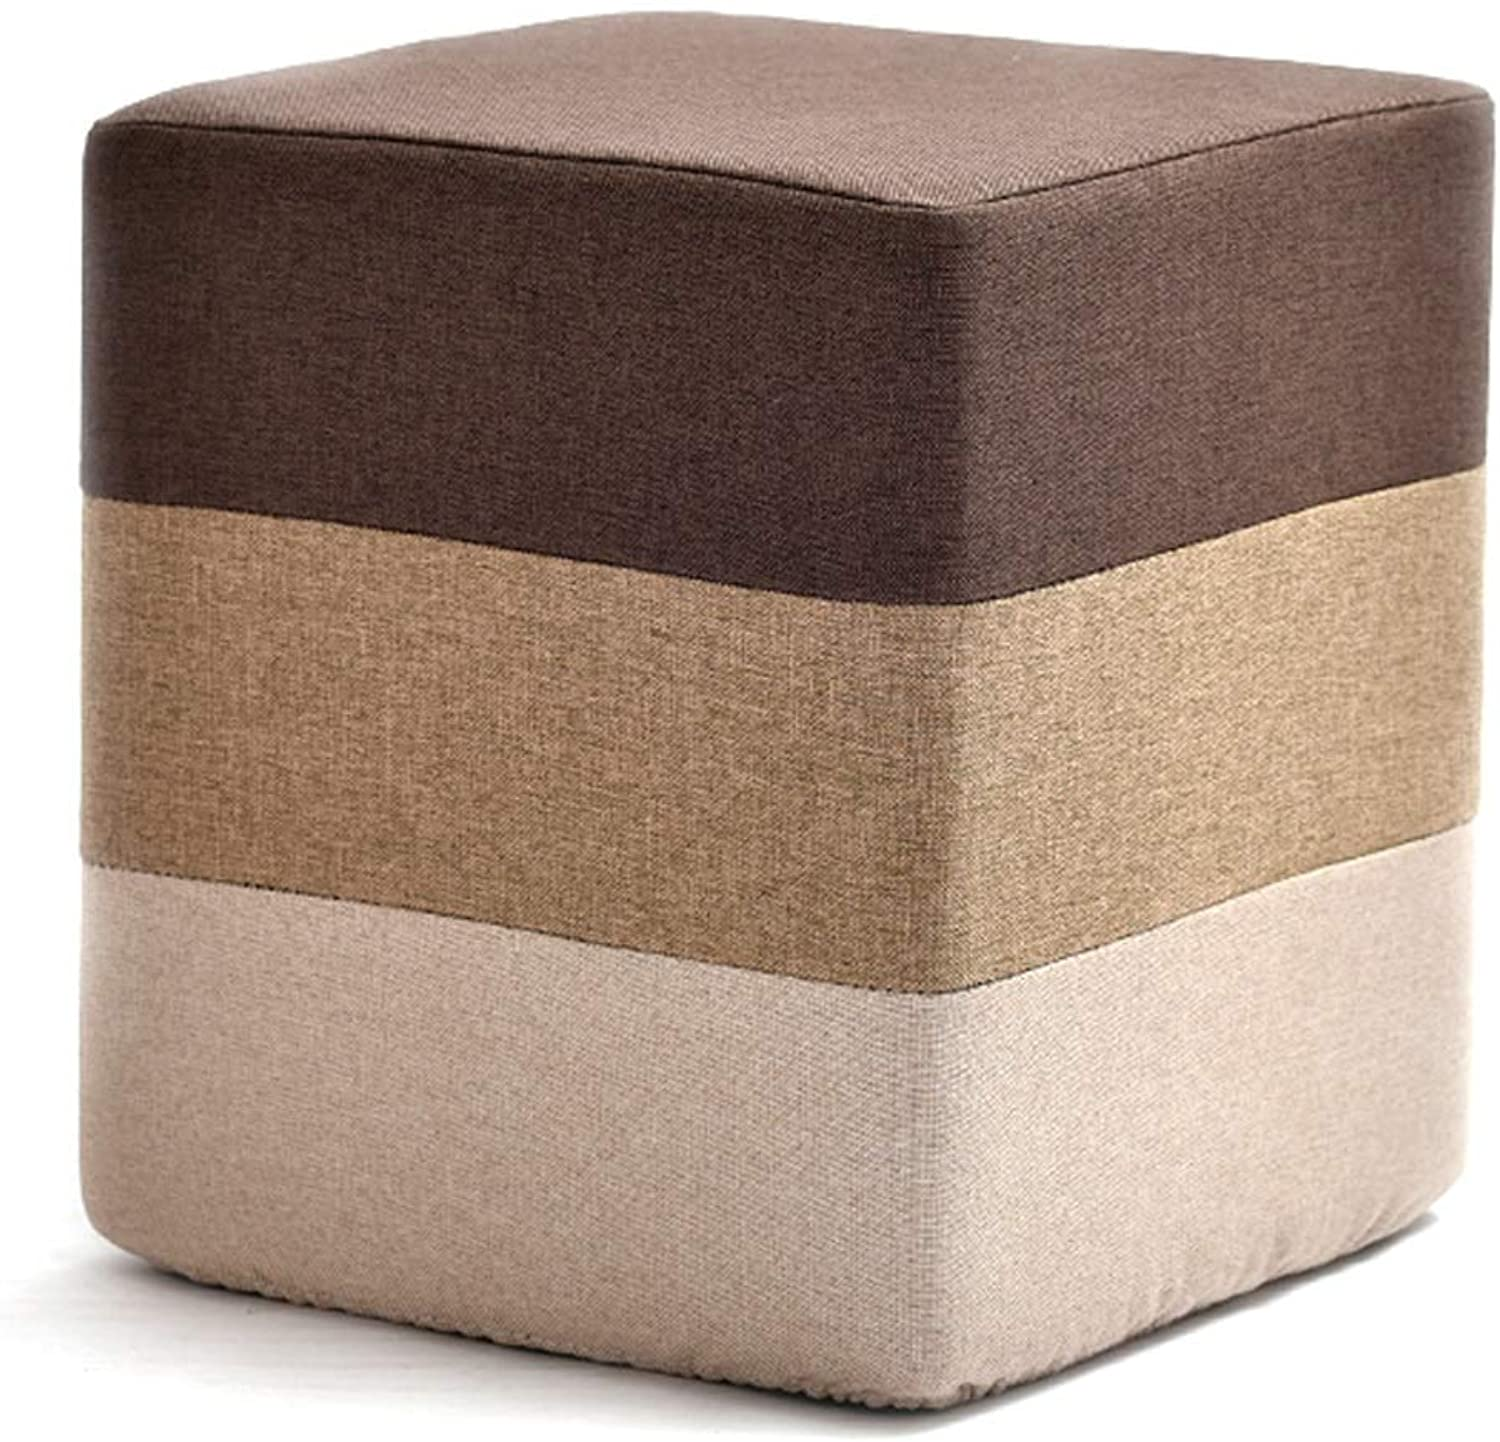 Linen Sofa Bench, colorful Leisure Footstool, Small Seat Modern Furniture, Removable Cover and High Elastic Sponge, Suitable for Bedroom Living Room (color   Brown, Size   Cube)